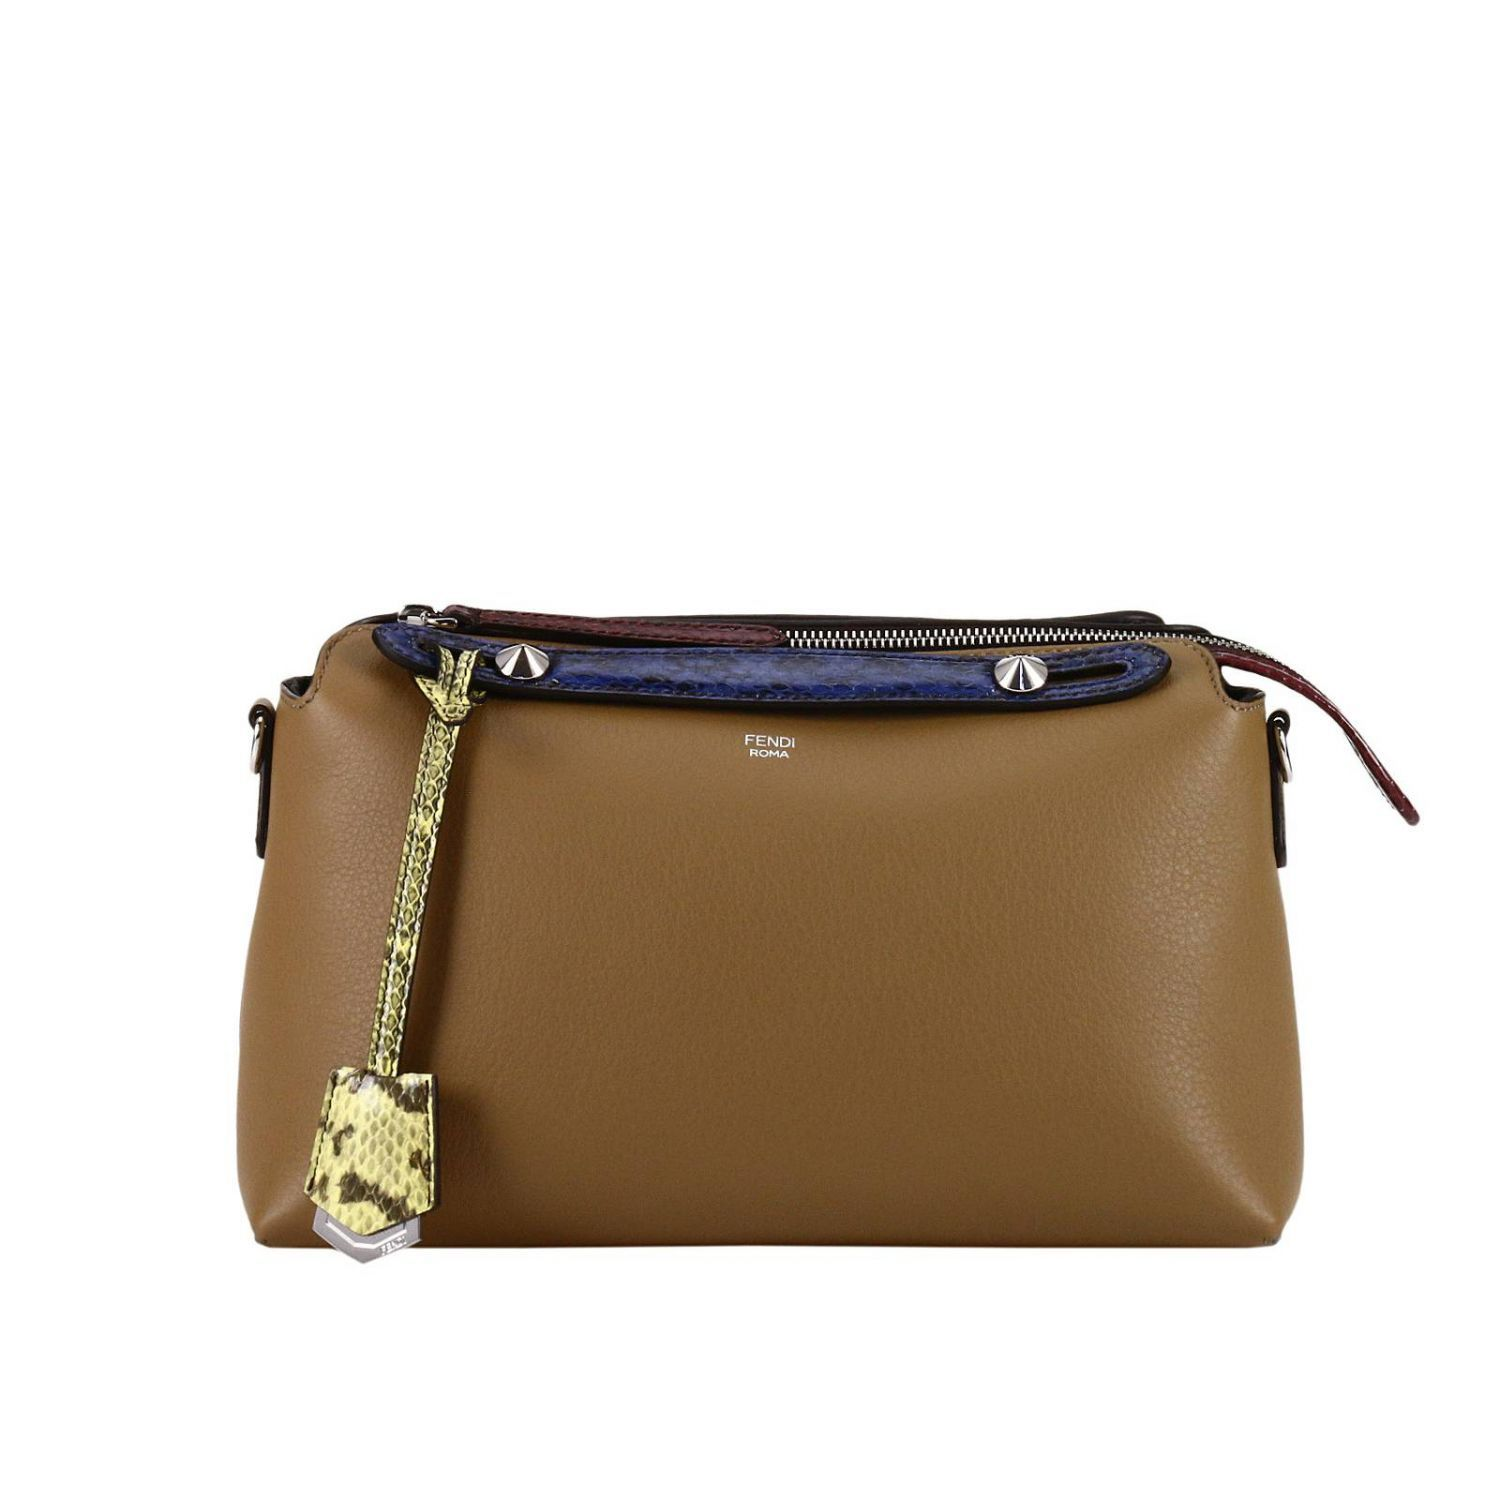 Handbag Shoulder Bag Women Fendi